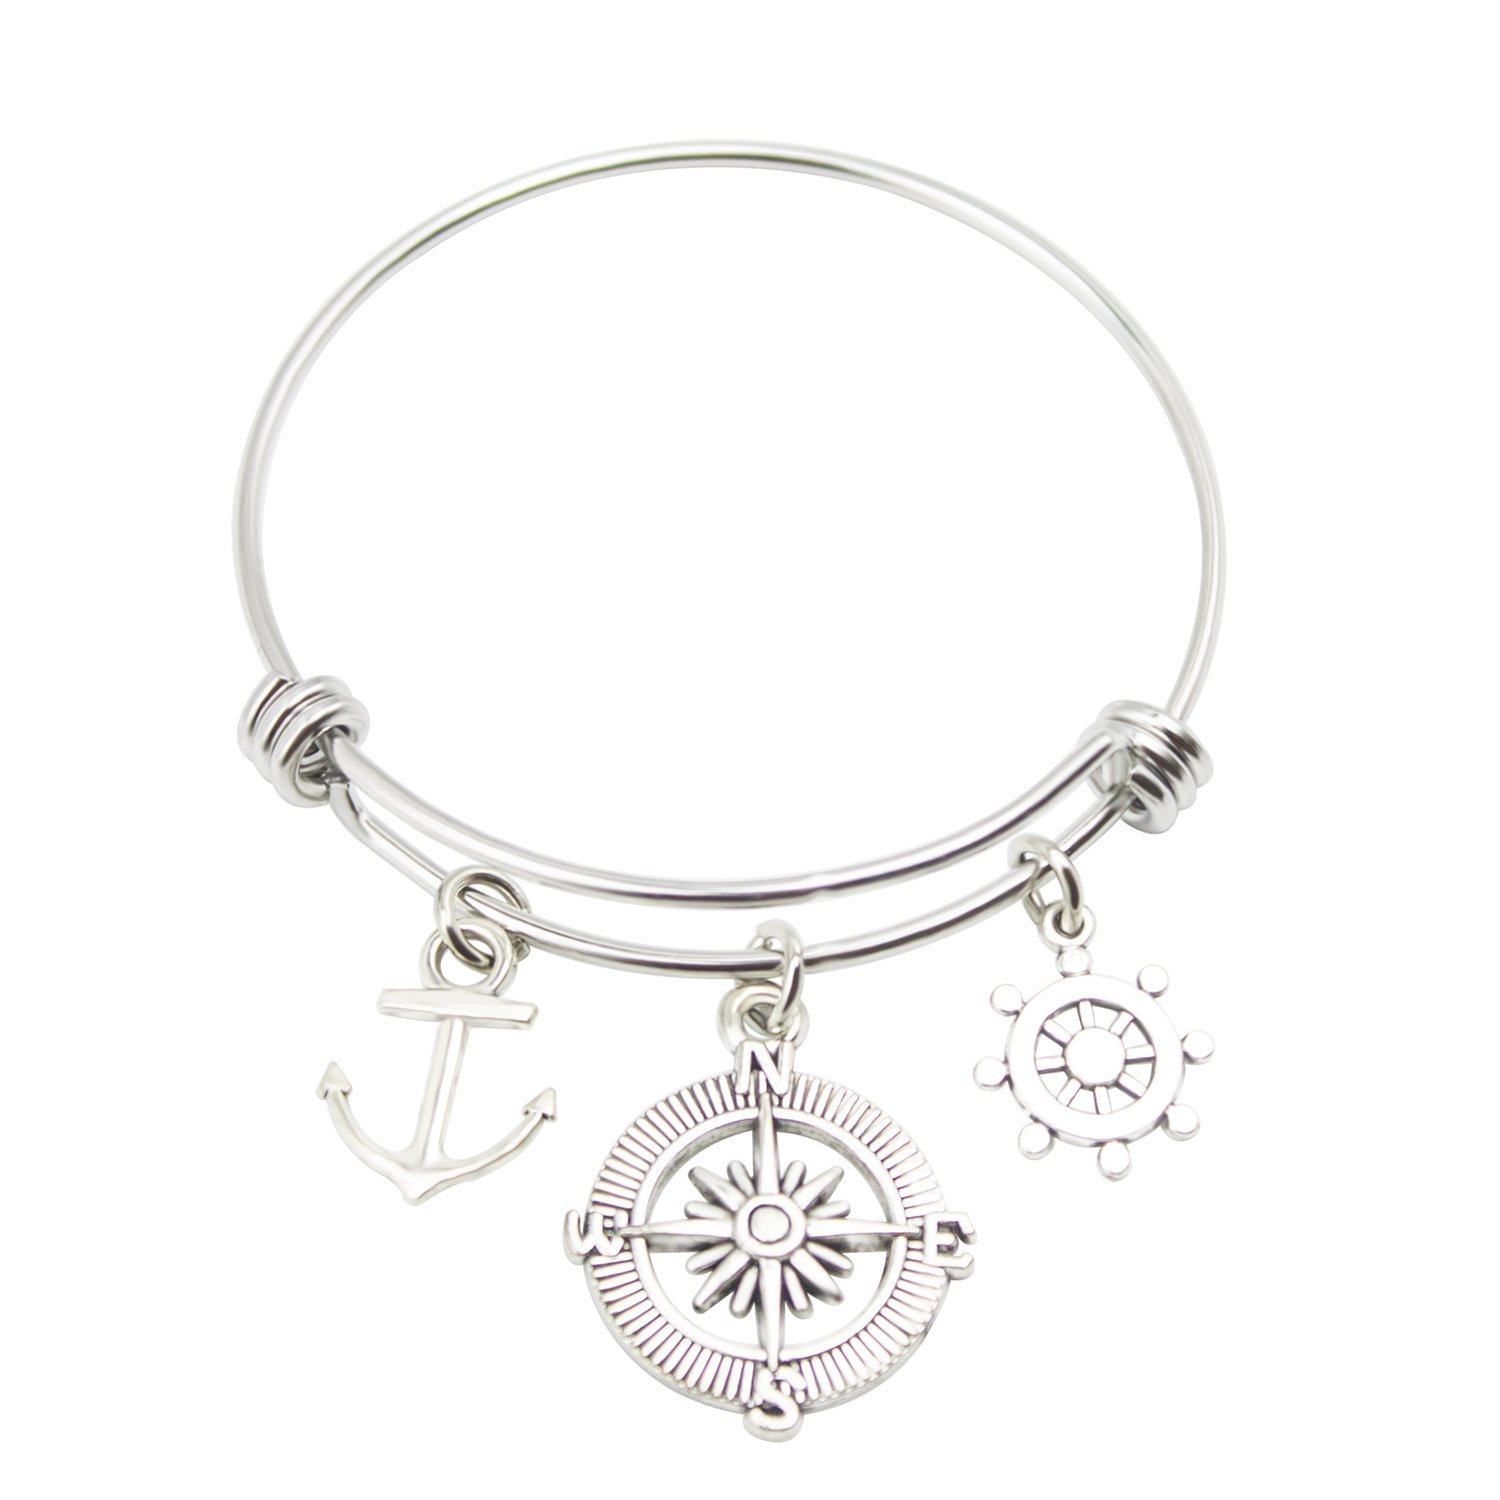 Zizh Travel Bangle Compass Bracelet Stainless Steel Expandable wire Bangle Rudder Anchor Charm DIY Jewelry Gift for Traveler